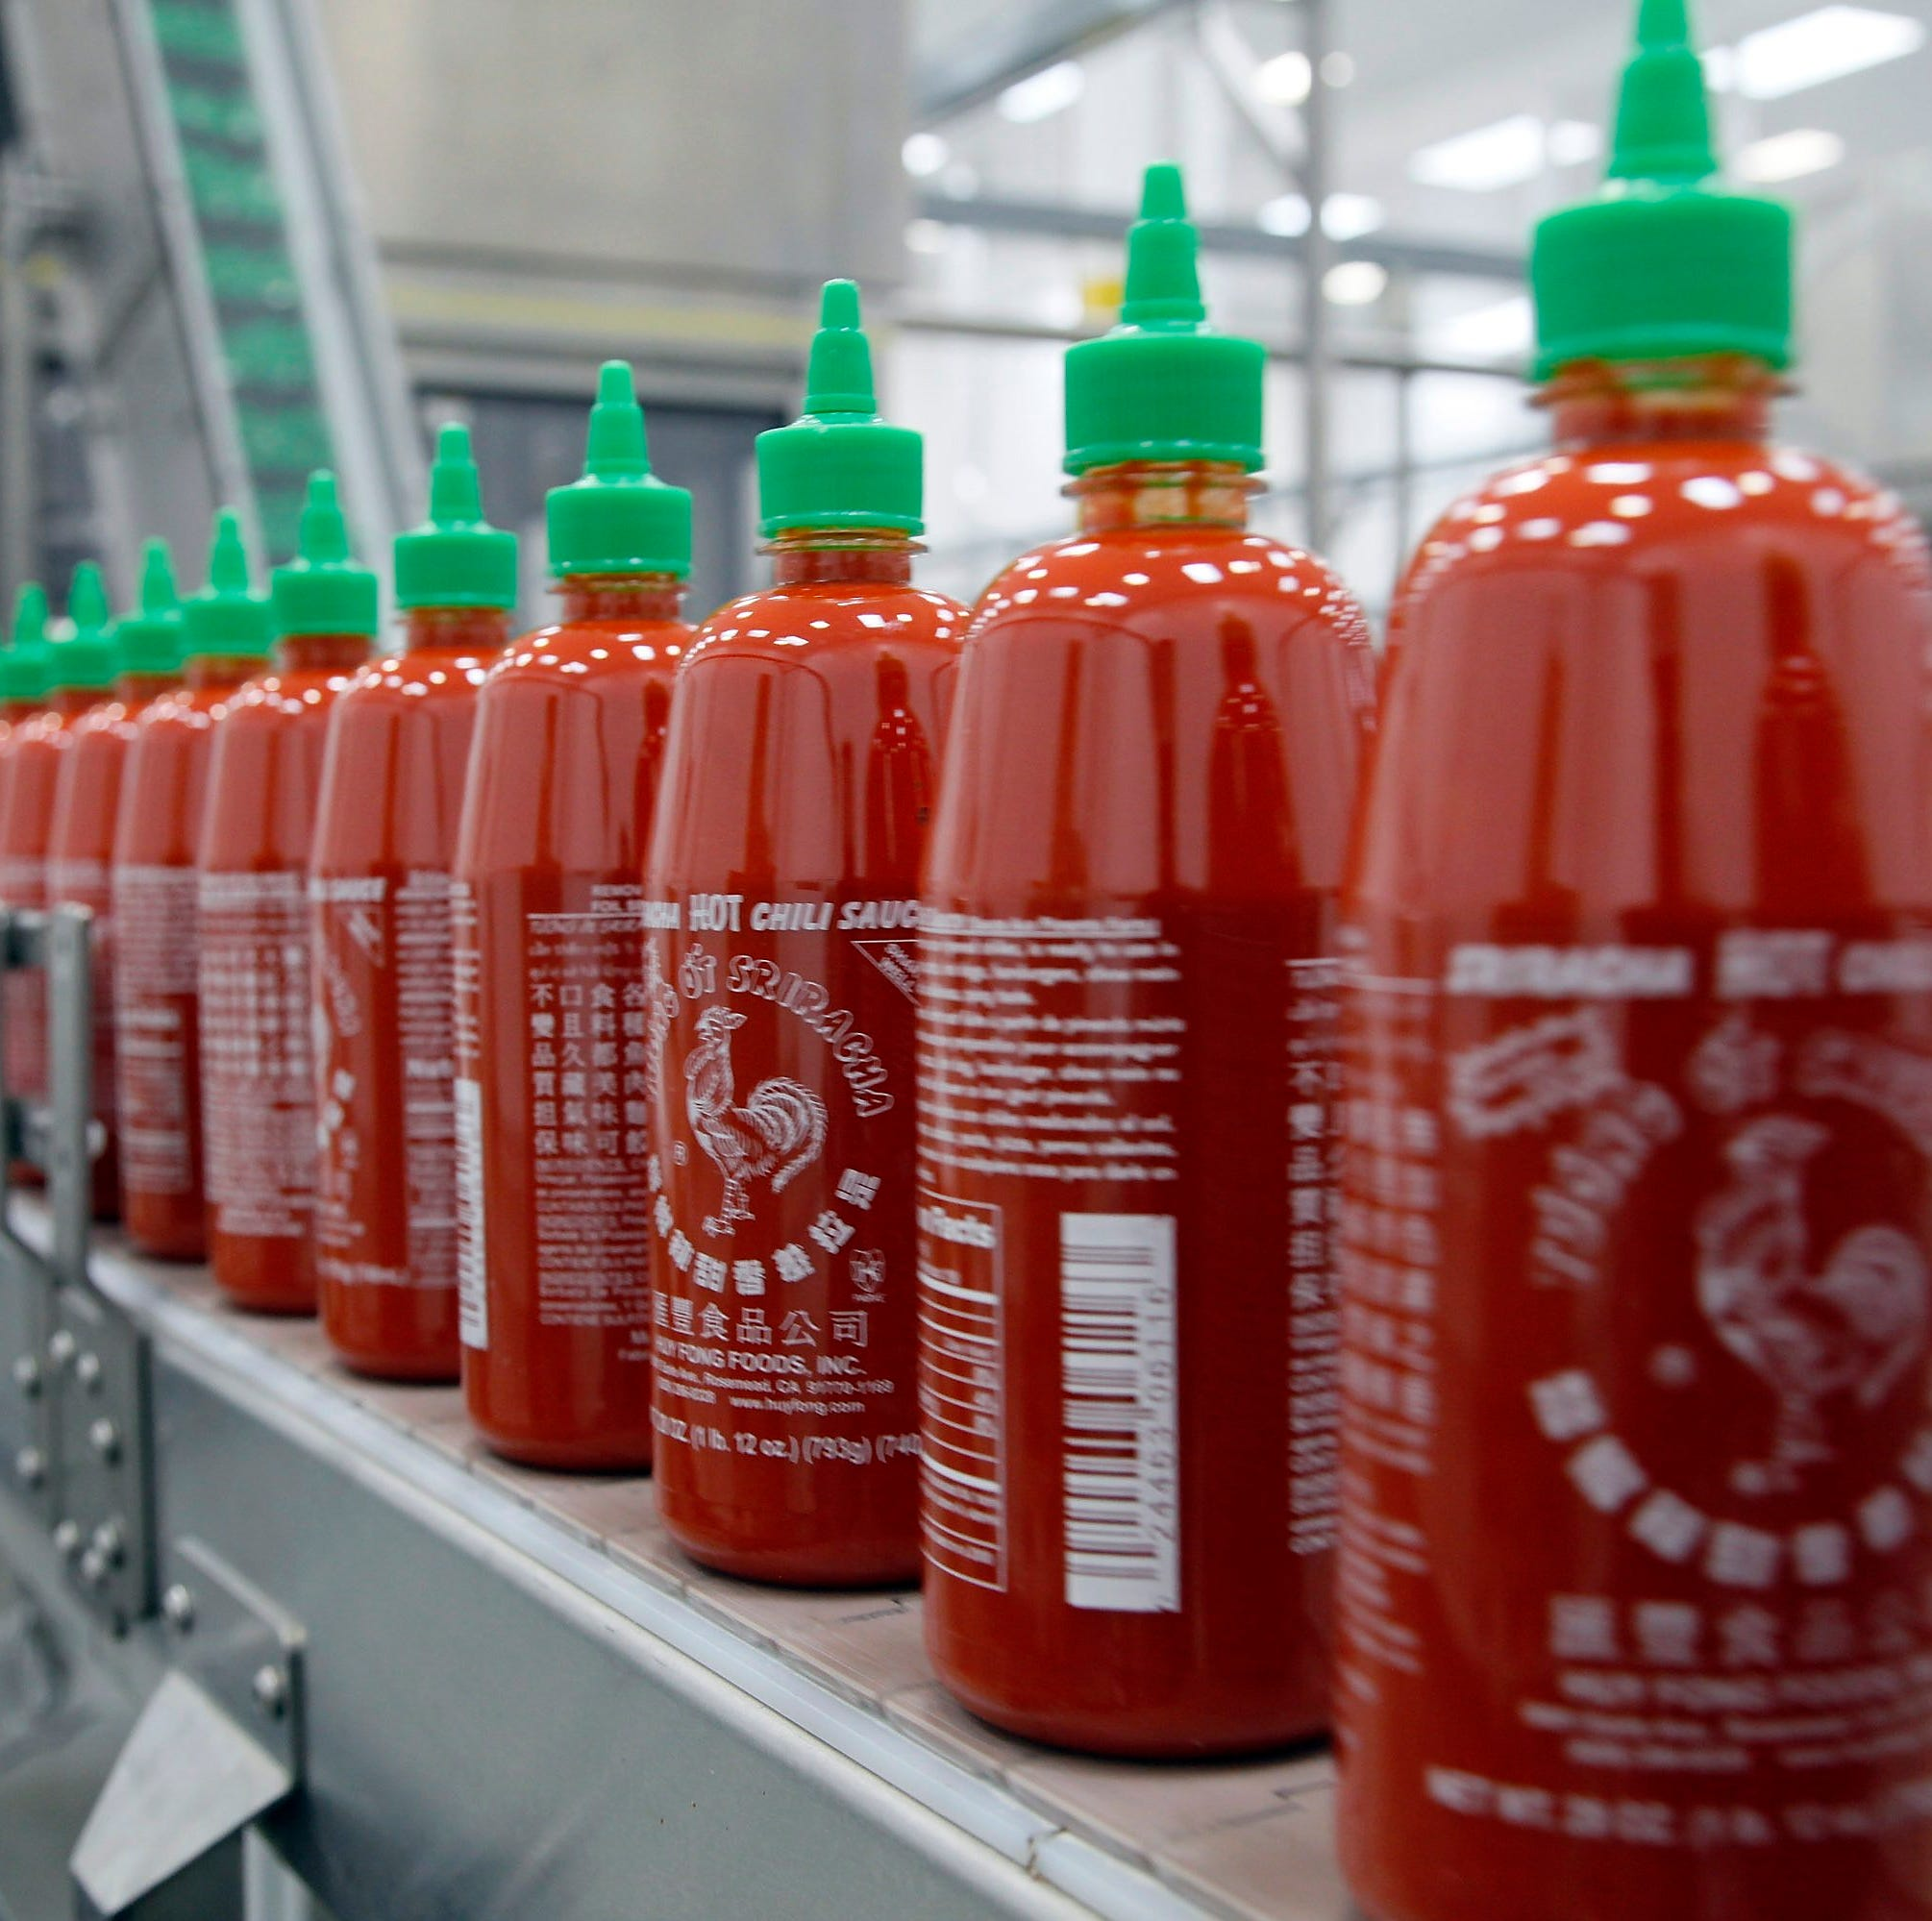 Sriracha partnership flames into Ventura County court battle; $20-plus million at stake